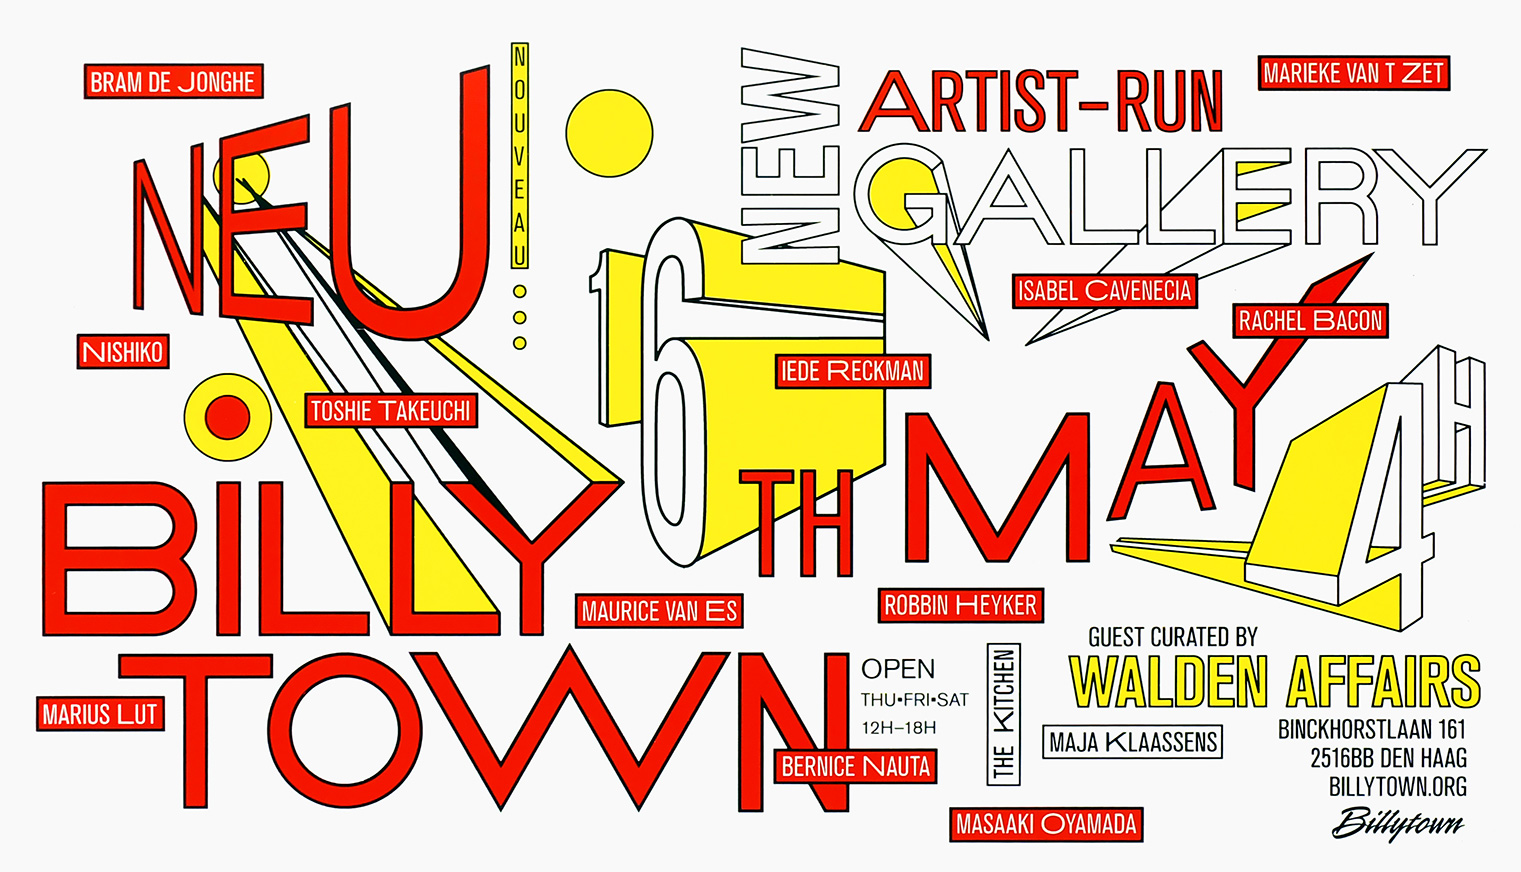 Billytown Artist-Run Gallery